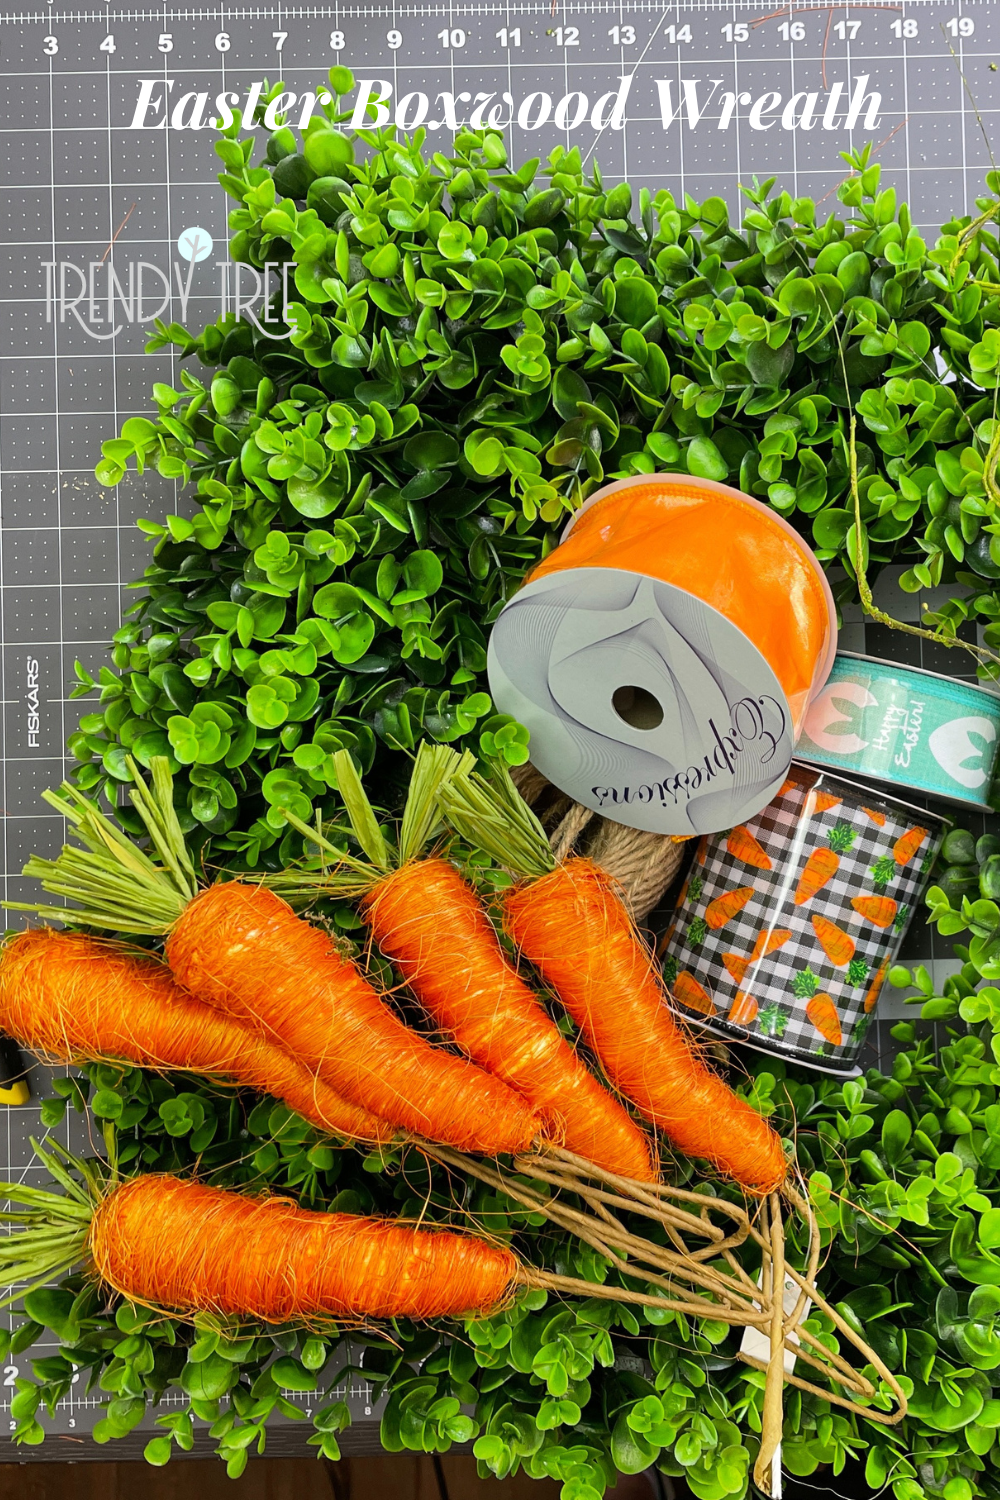 Supplies for Decorating a Boxwood Wreath for Easter